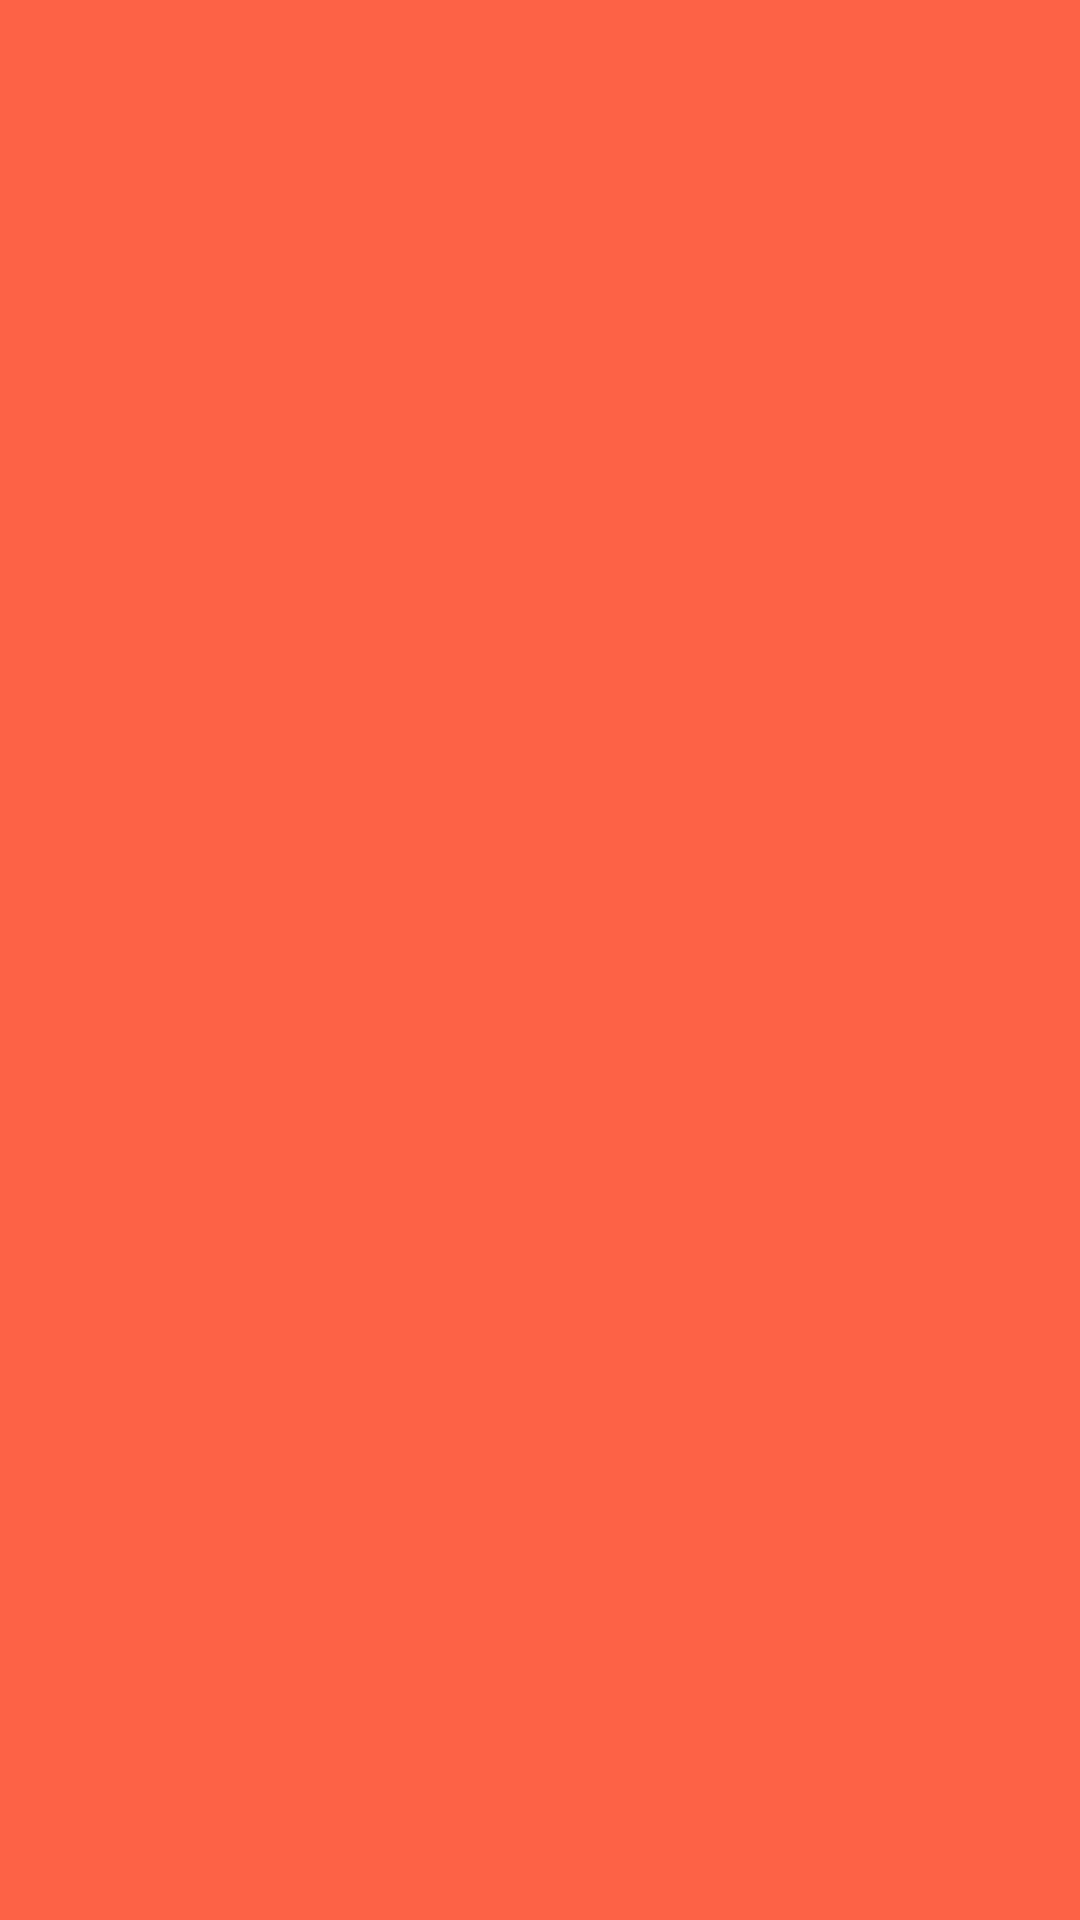 1080x1920 Tomato Solid Color Background